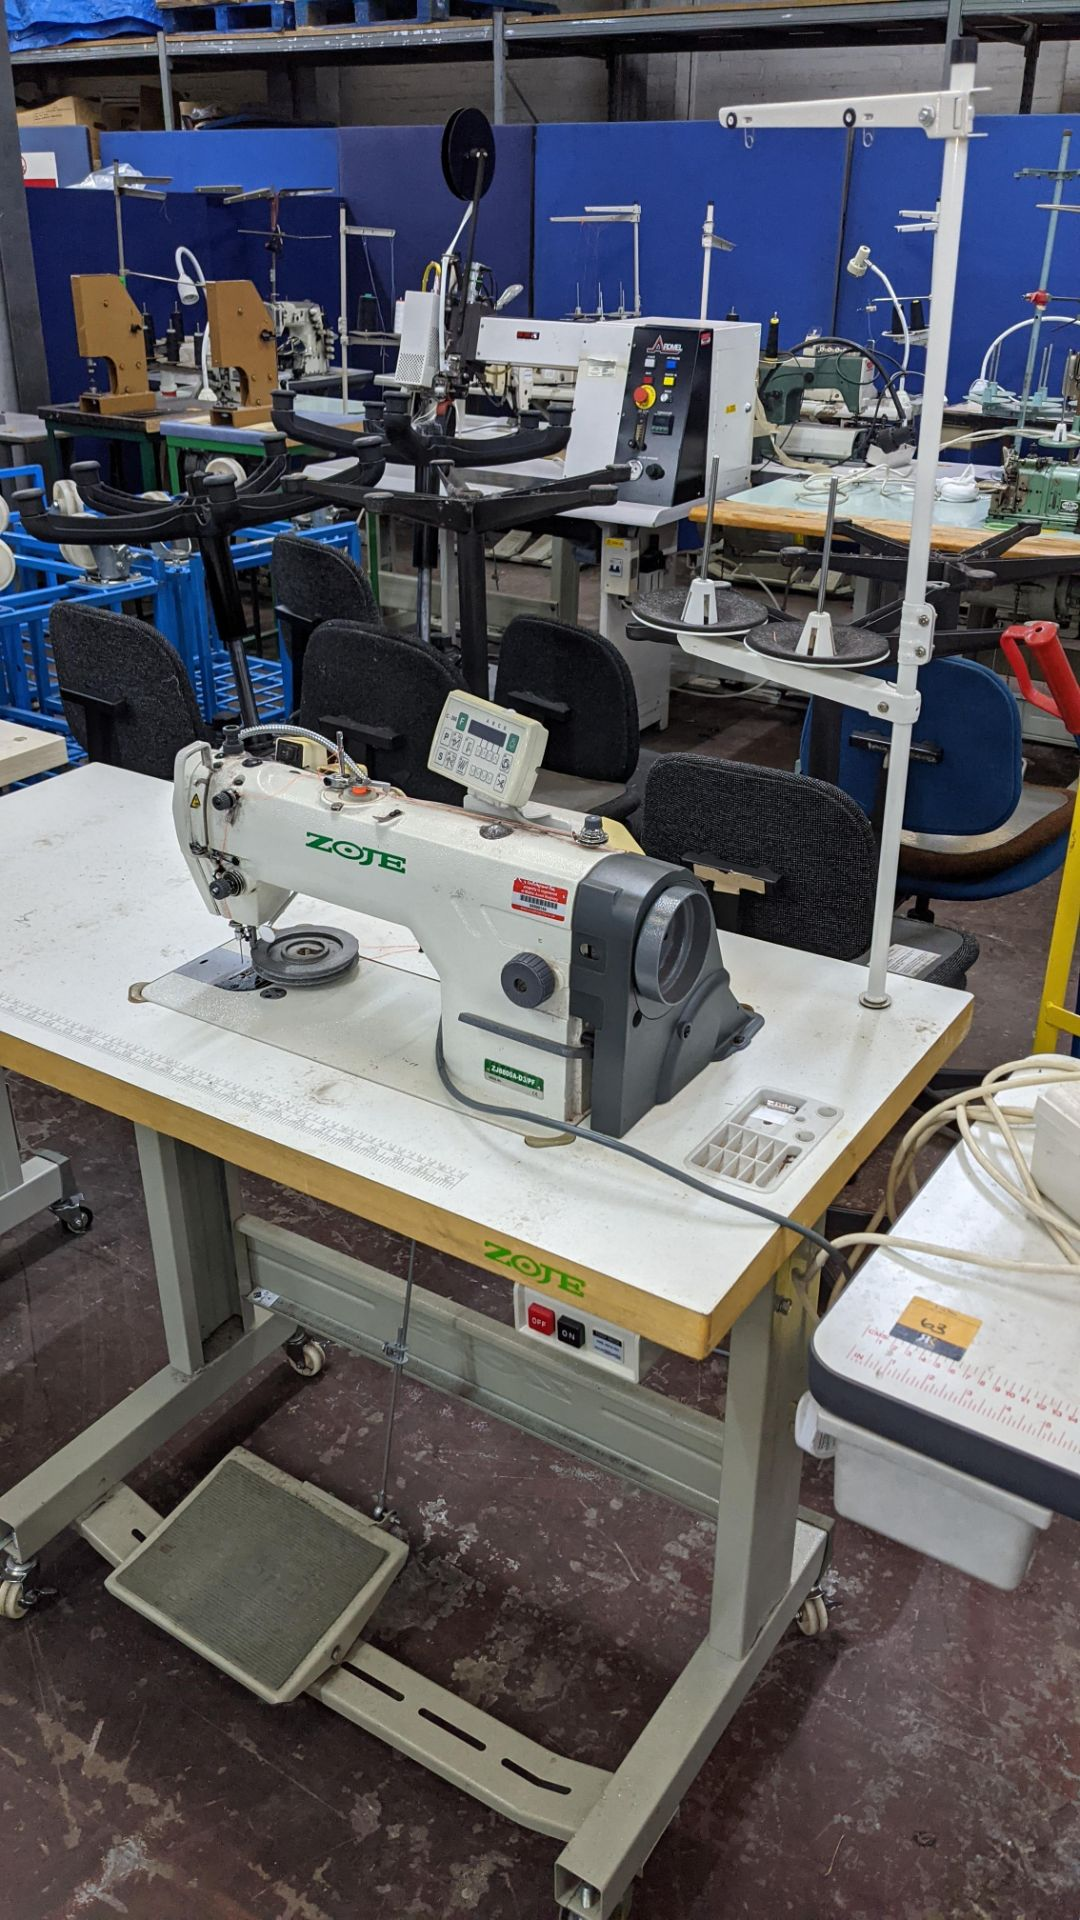 Zoje model ZJ8800A-D3B/PF sewing machine with C-200 controller - Image 3 of 16